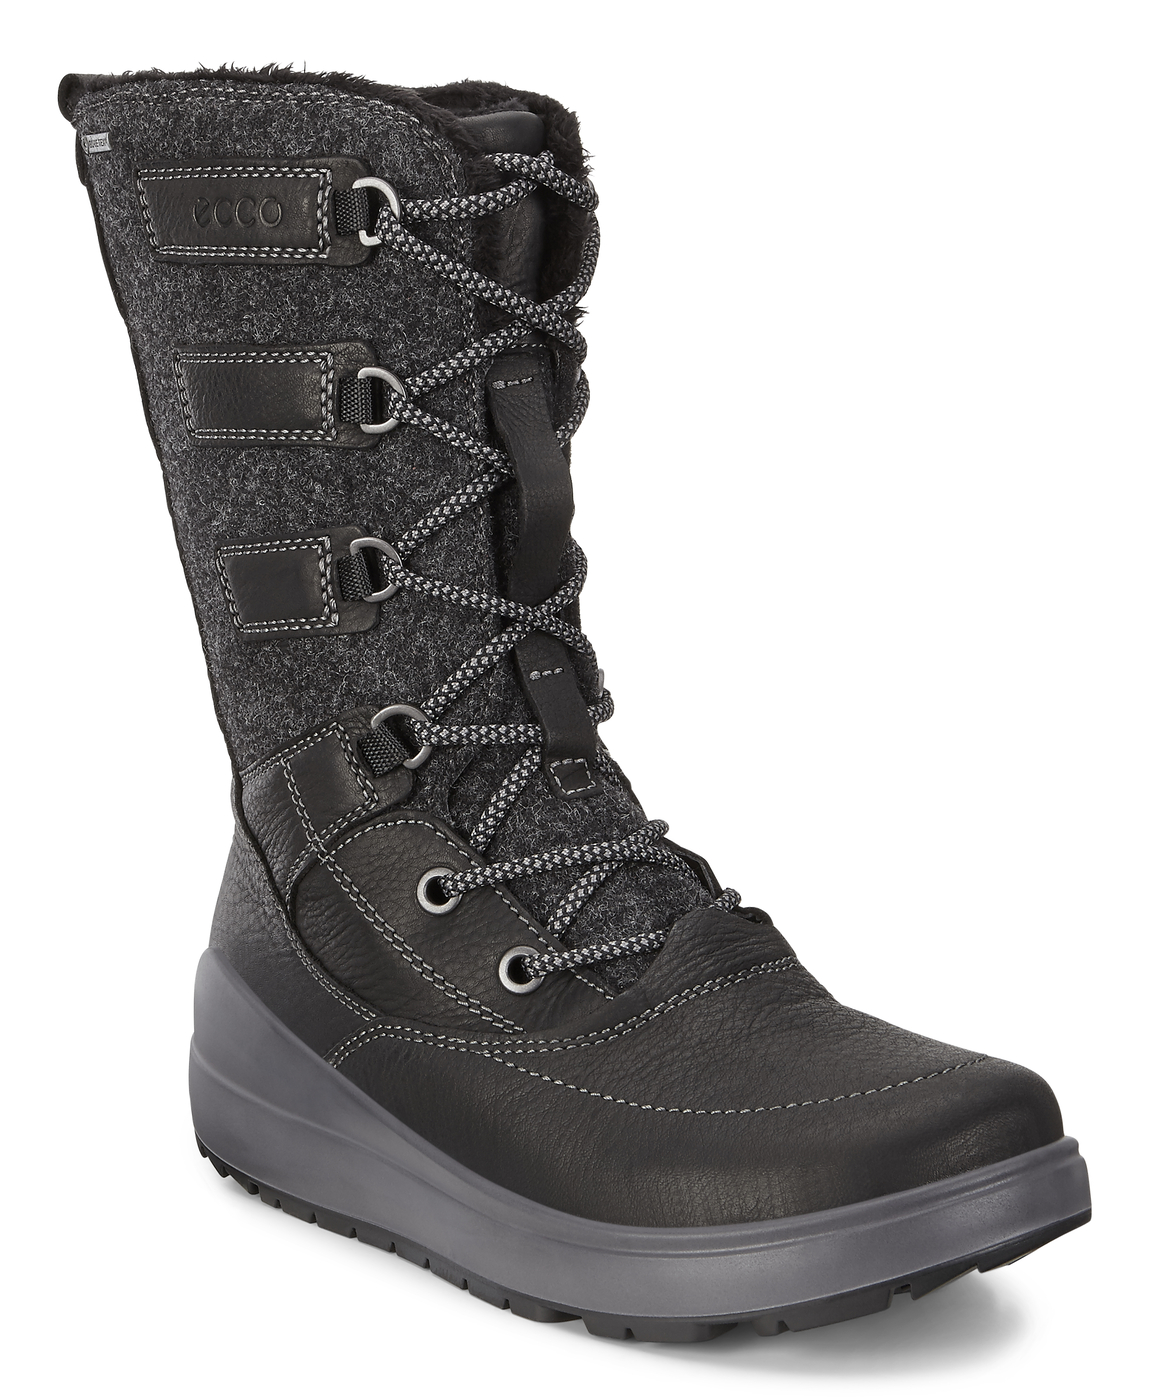 ECCO Womens Noyce GTX High